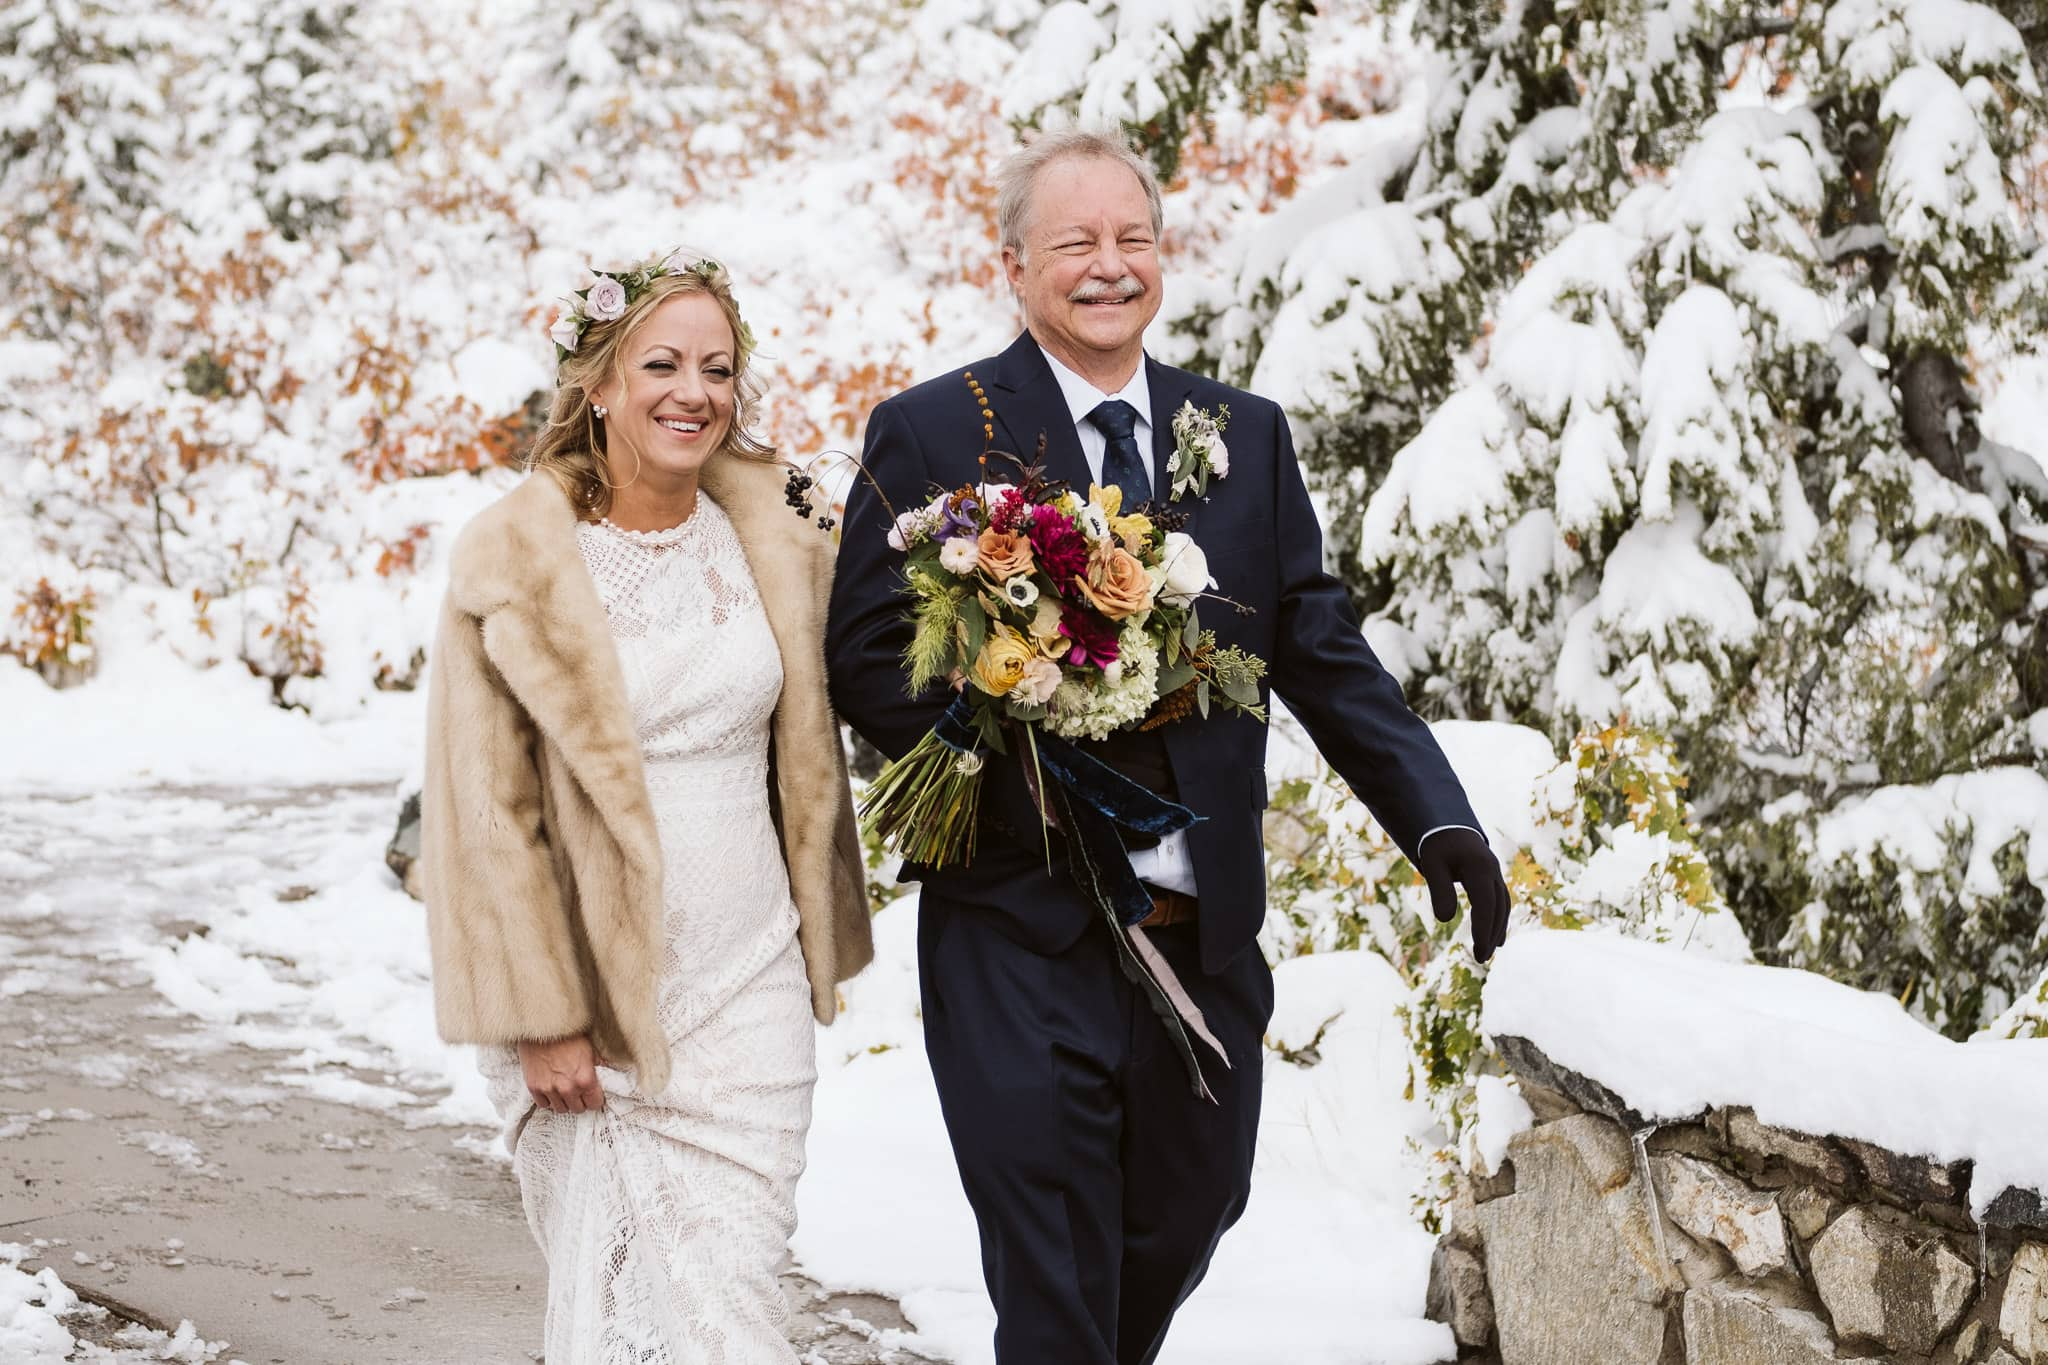 Bride walks down the aisle with her father at Fish Creek Falls wedding in Steamboat Springs